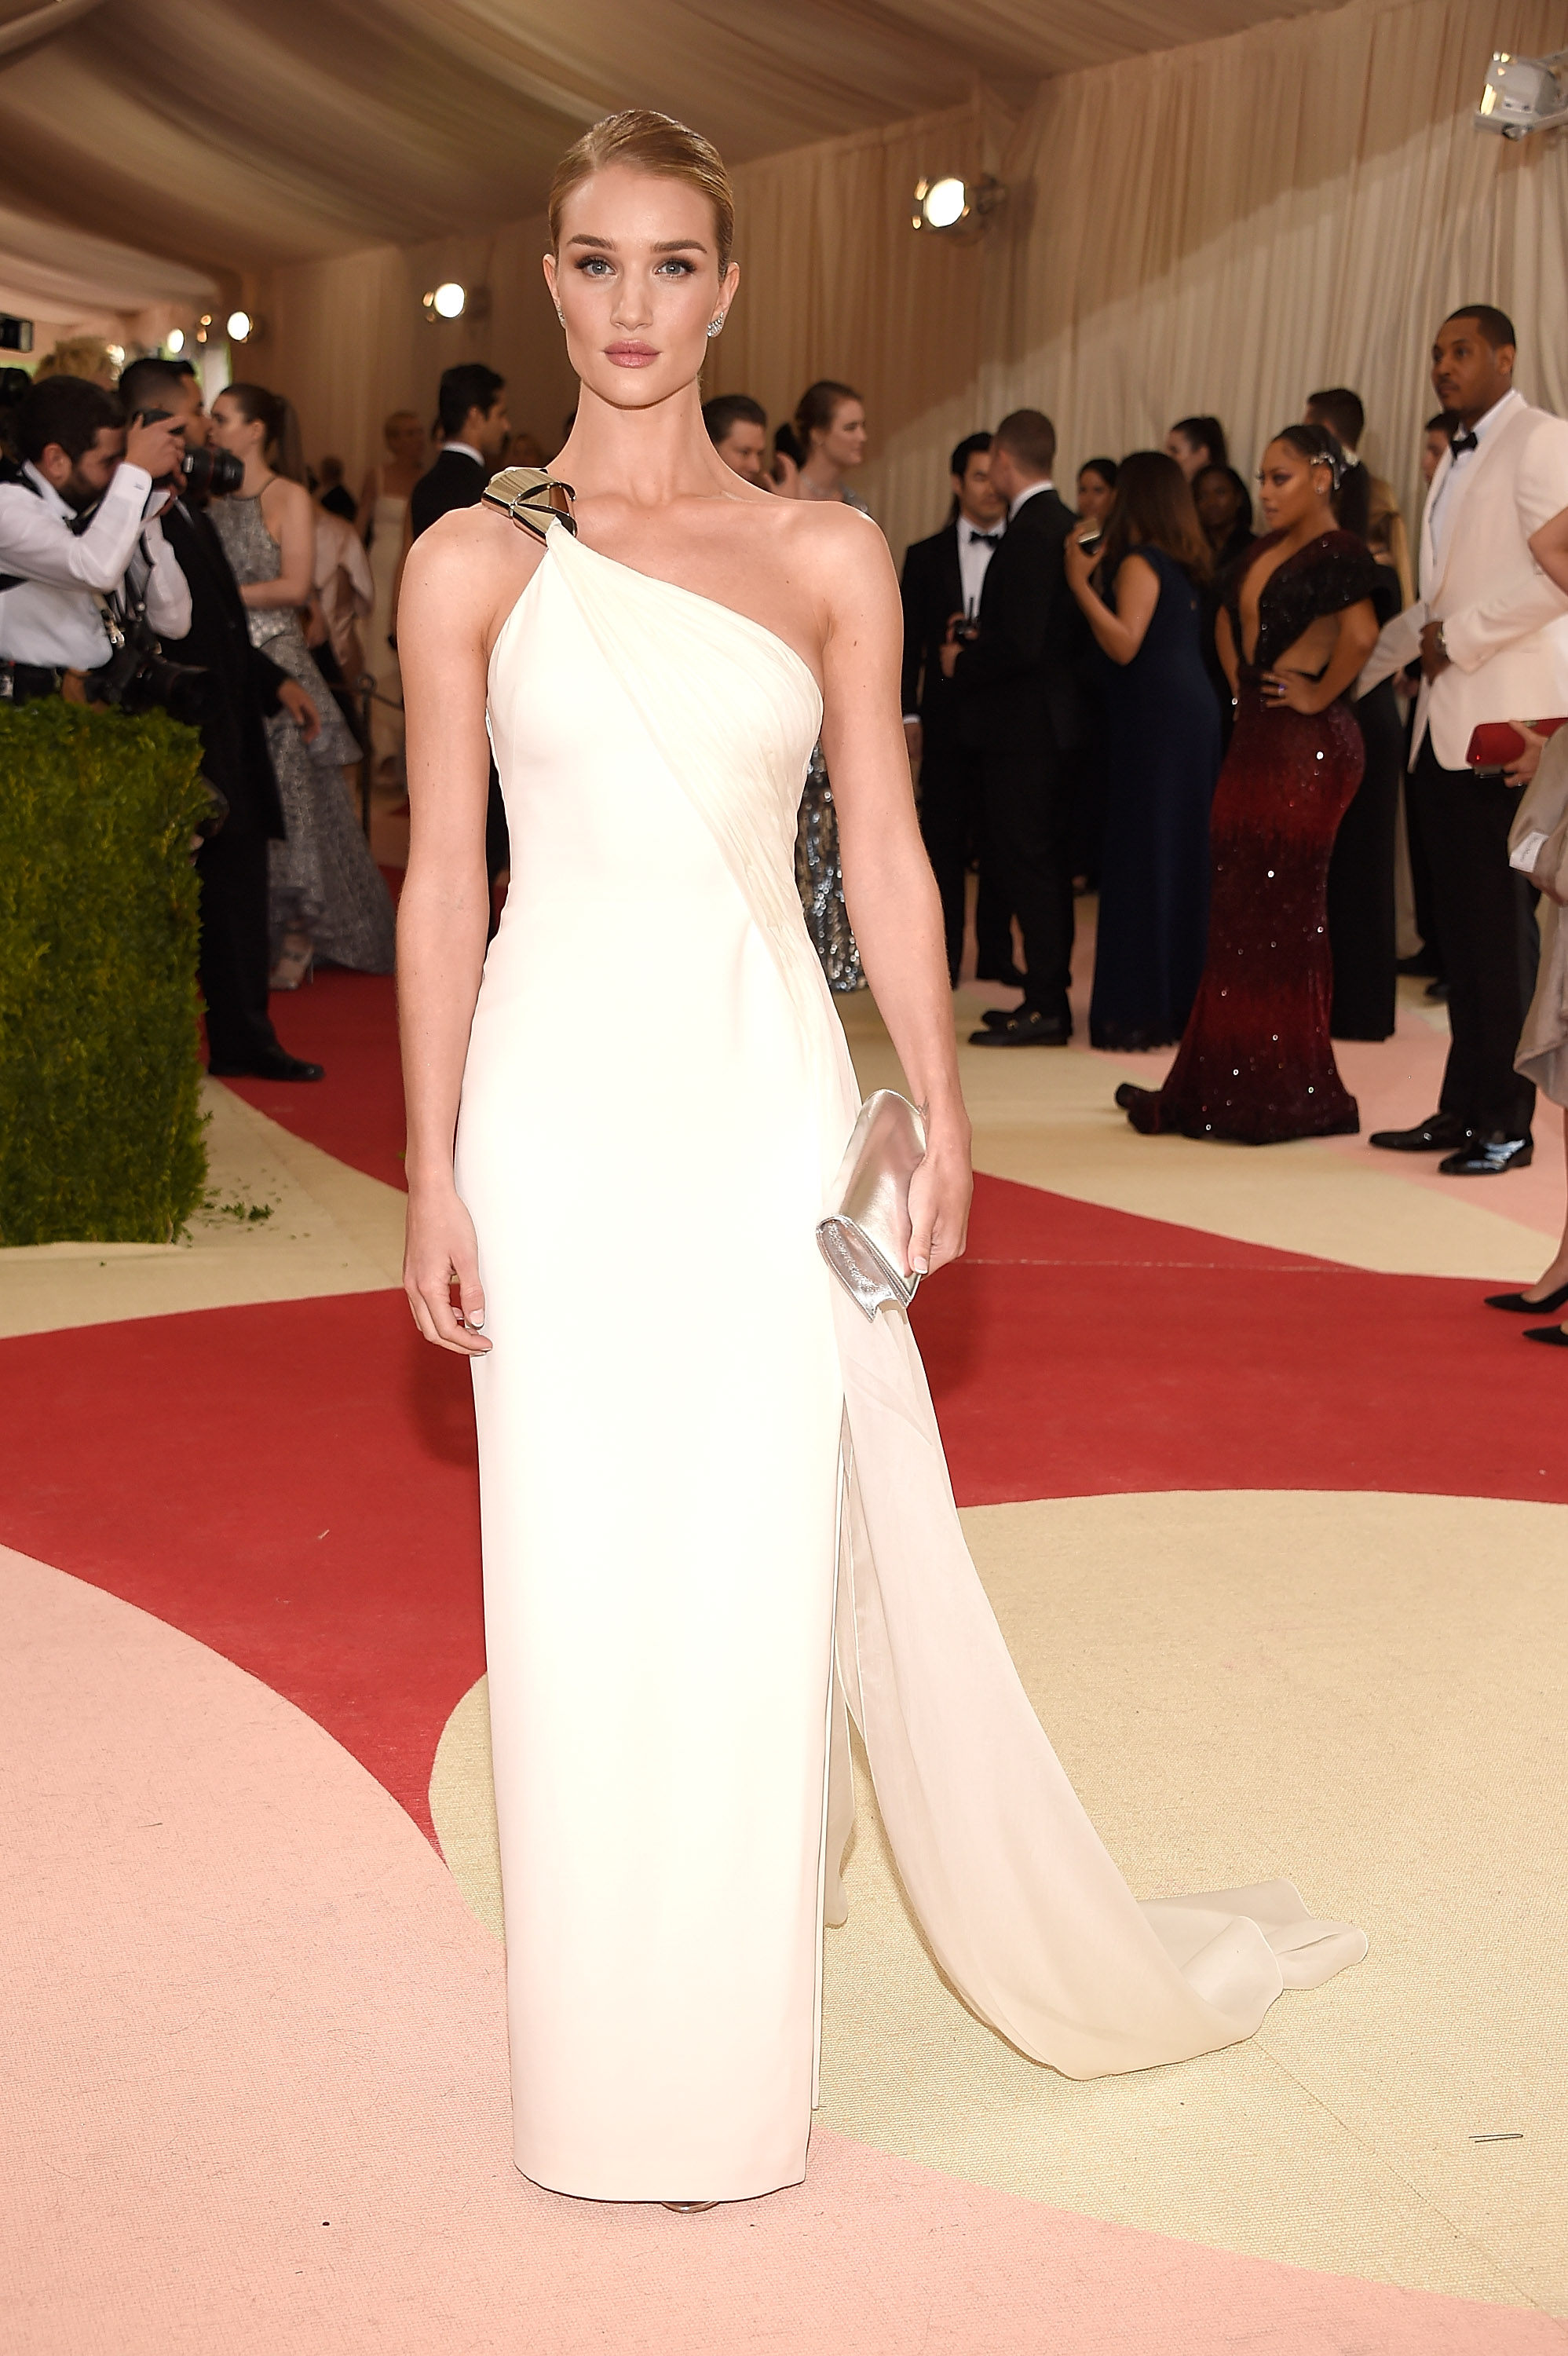 Rosie Huntington-Whiteley attends  Manus x Machina: Fashion In An Age Of Technology  Costume Institute Gala at Metropolitan Museum of Art on May 2, 2016 in New York City.